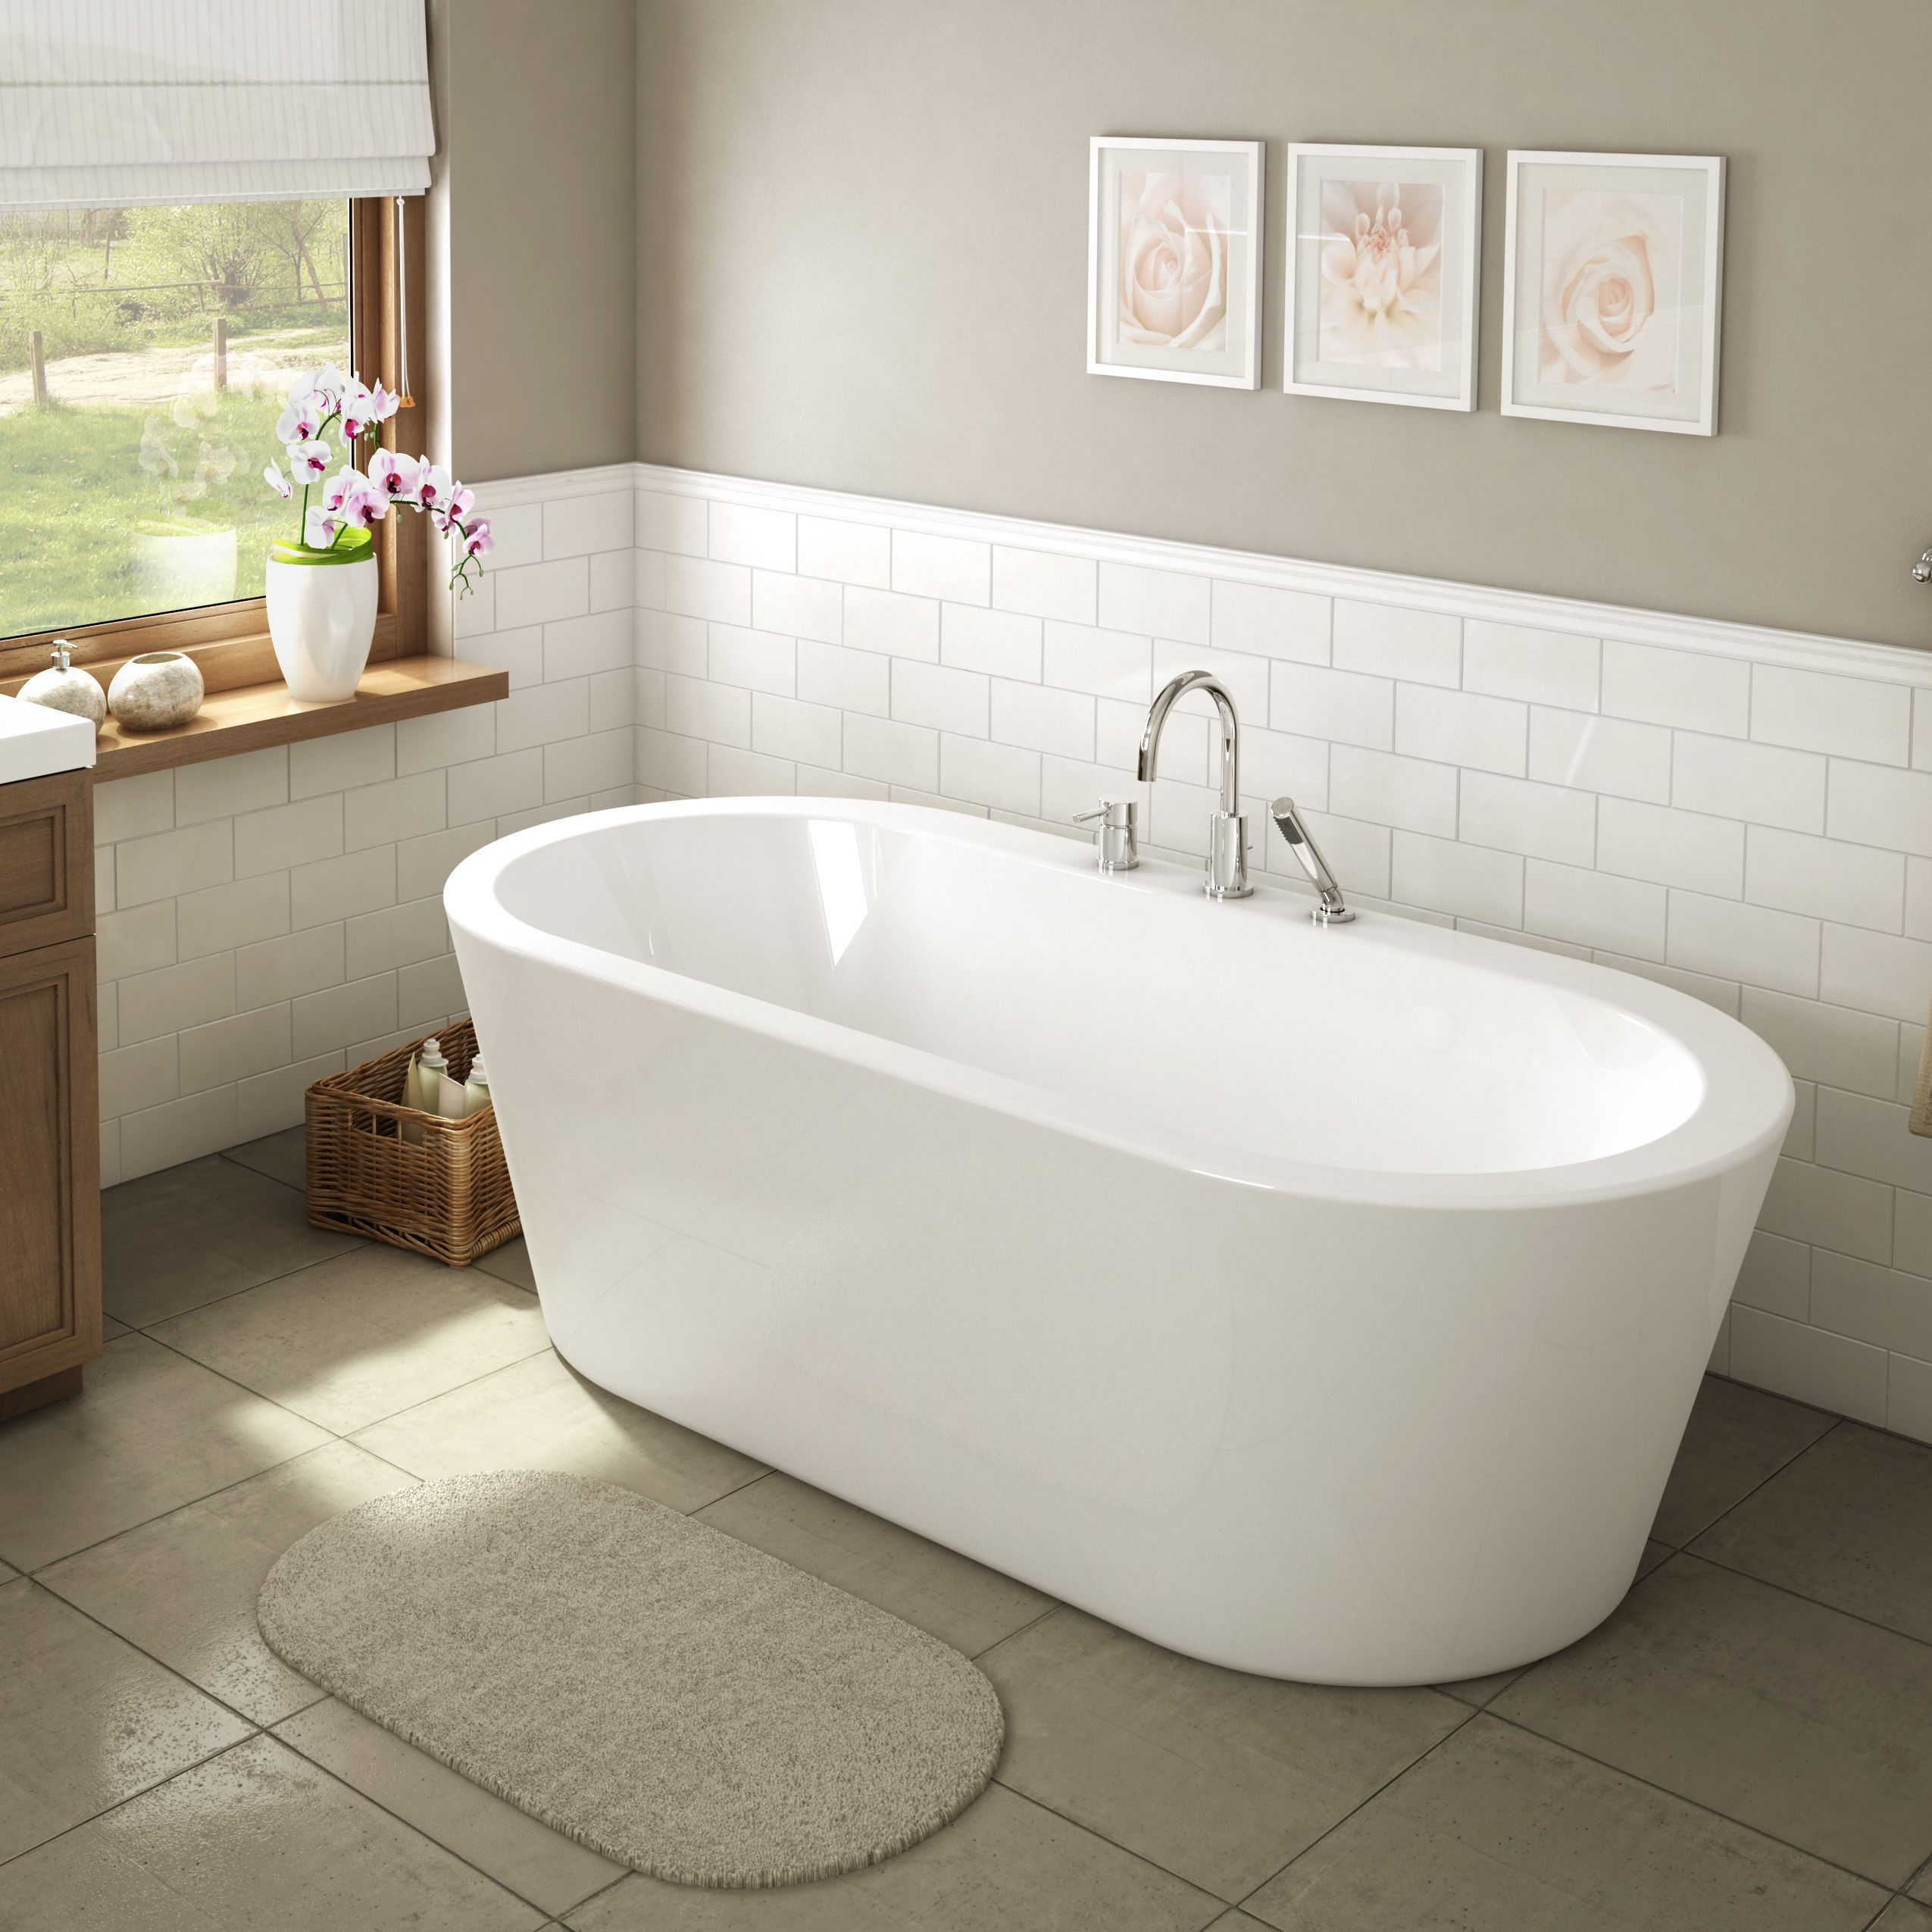 Shop A&E Bath & Shower A&E Bath & Shower Una